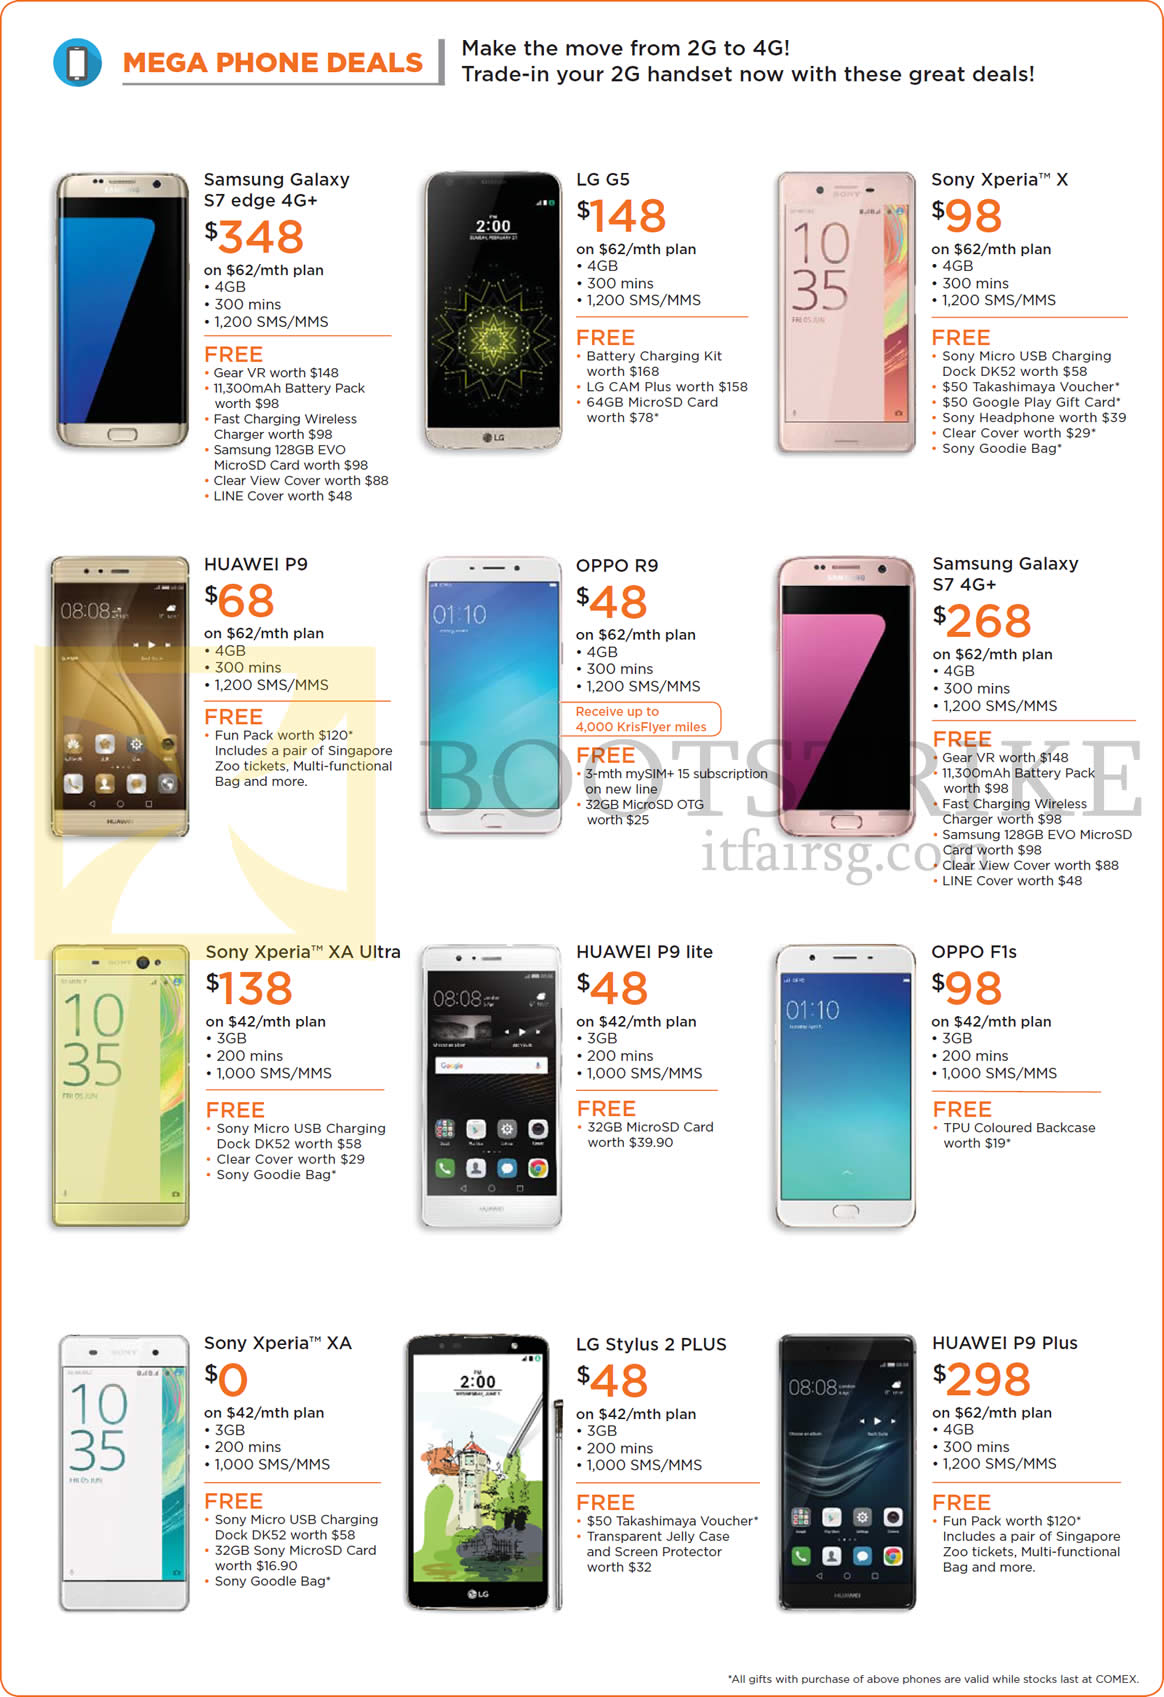 COMEX 2016 price list image brochure of M1 Mobile Phone Deals Samsung Galaxy S7 Edge, S7, LG G5, Stylus 2 Plus, Sony Xperia X, XA Ultra, XA, Huawei P9, P9 Plus, Oppo R9, F1s